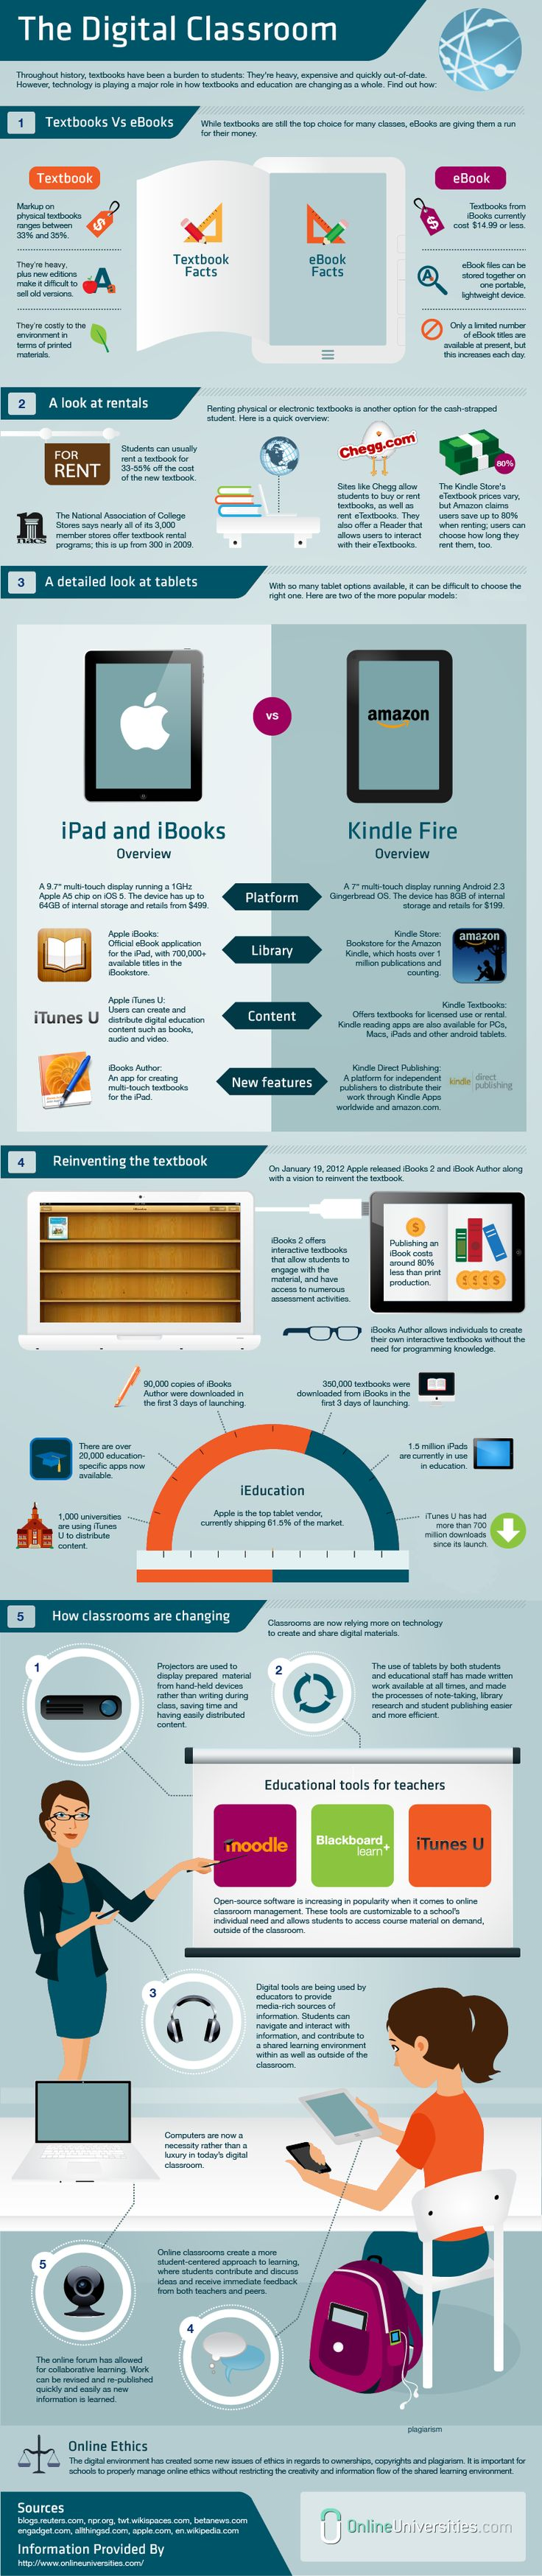 eBooks in the Digital Classroom